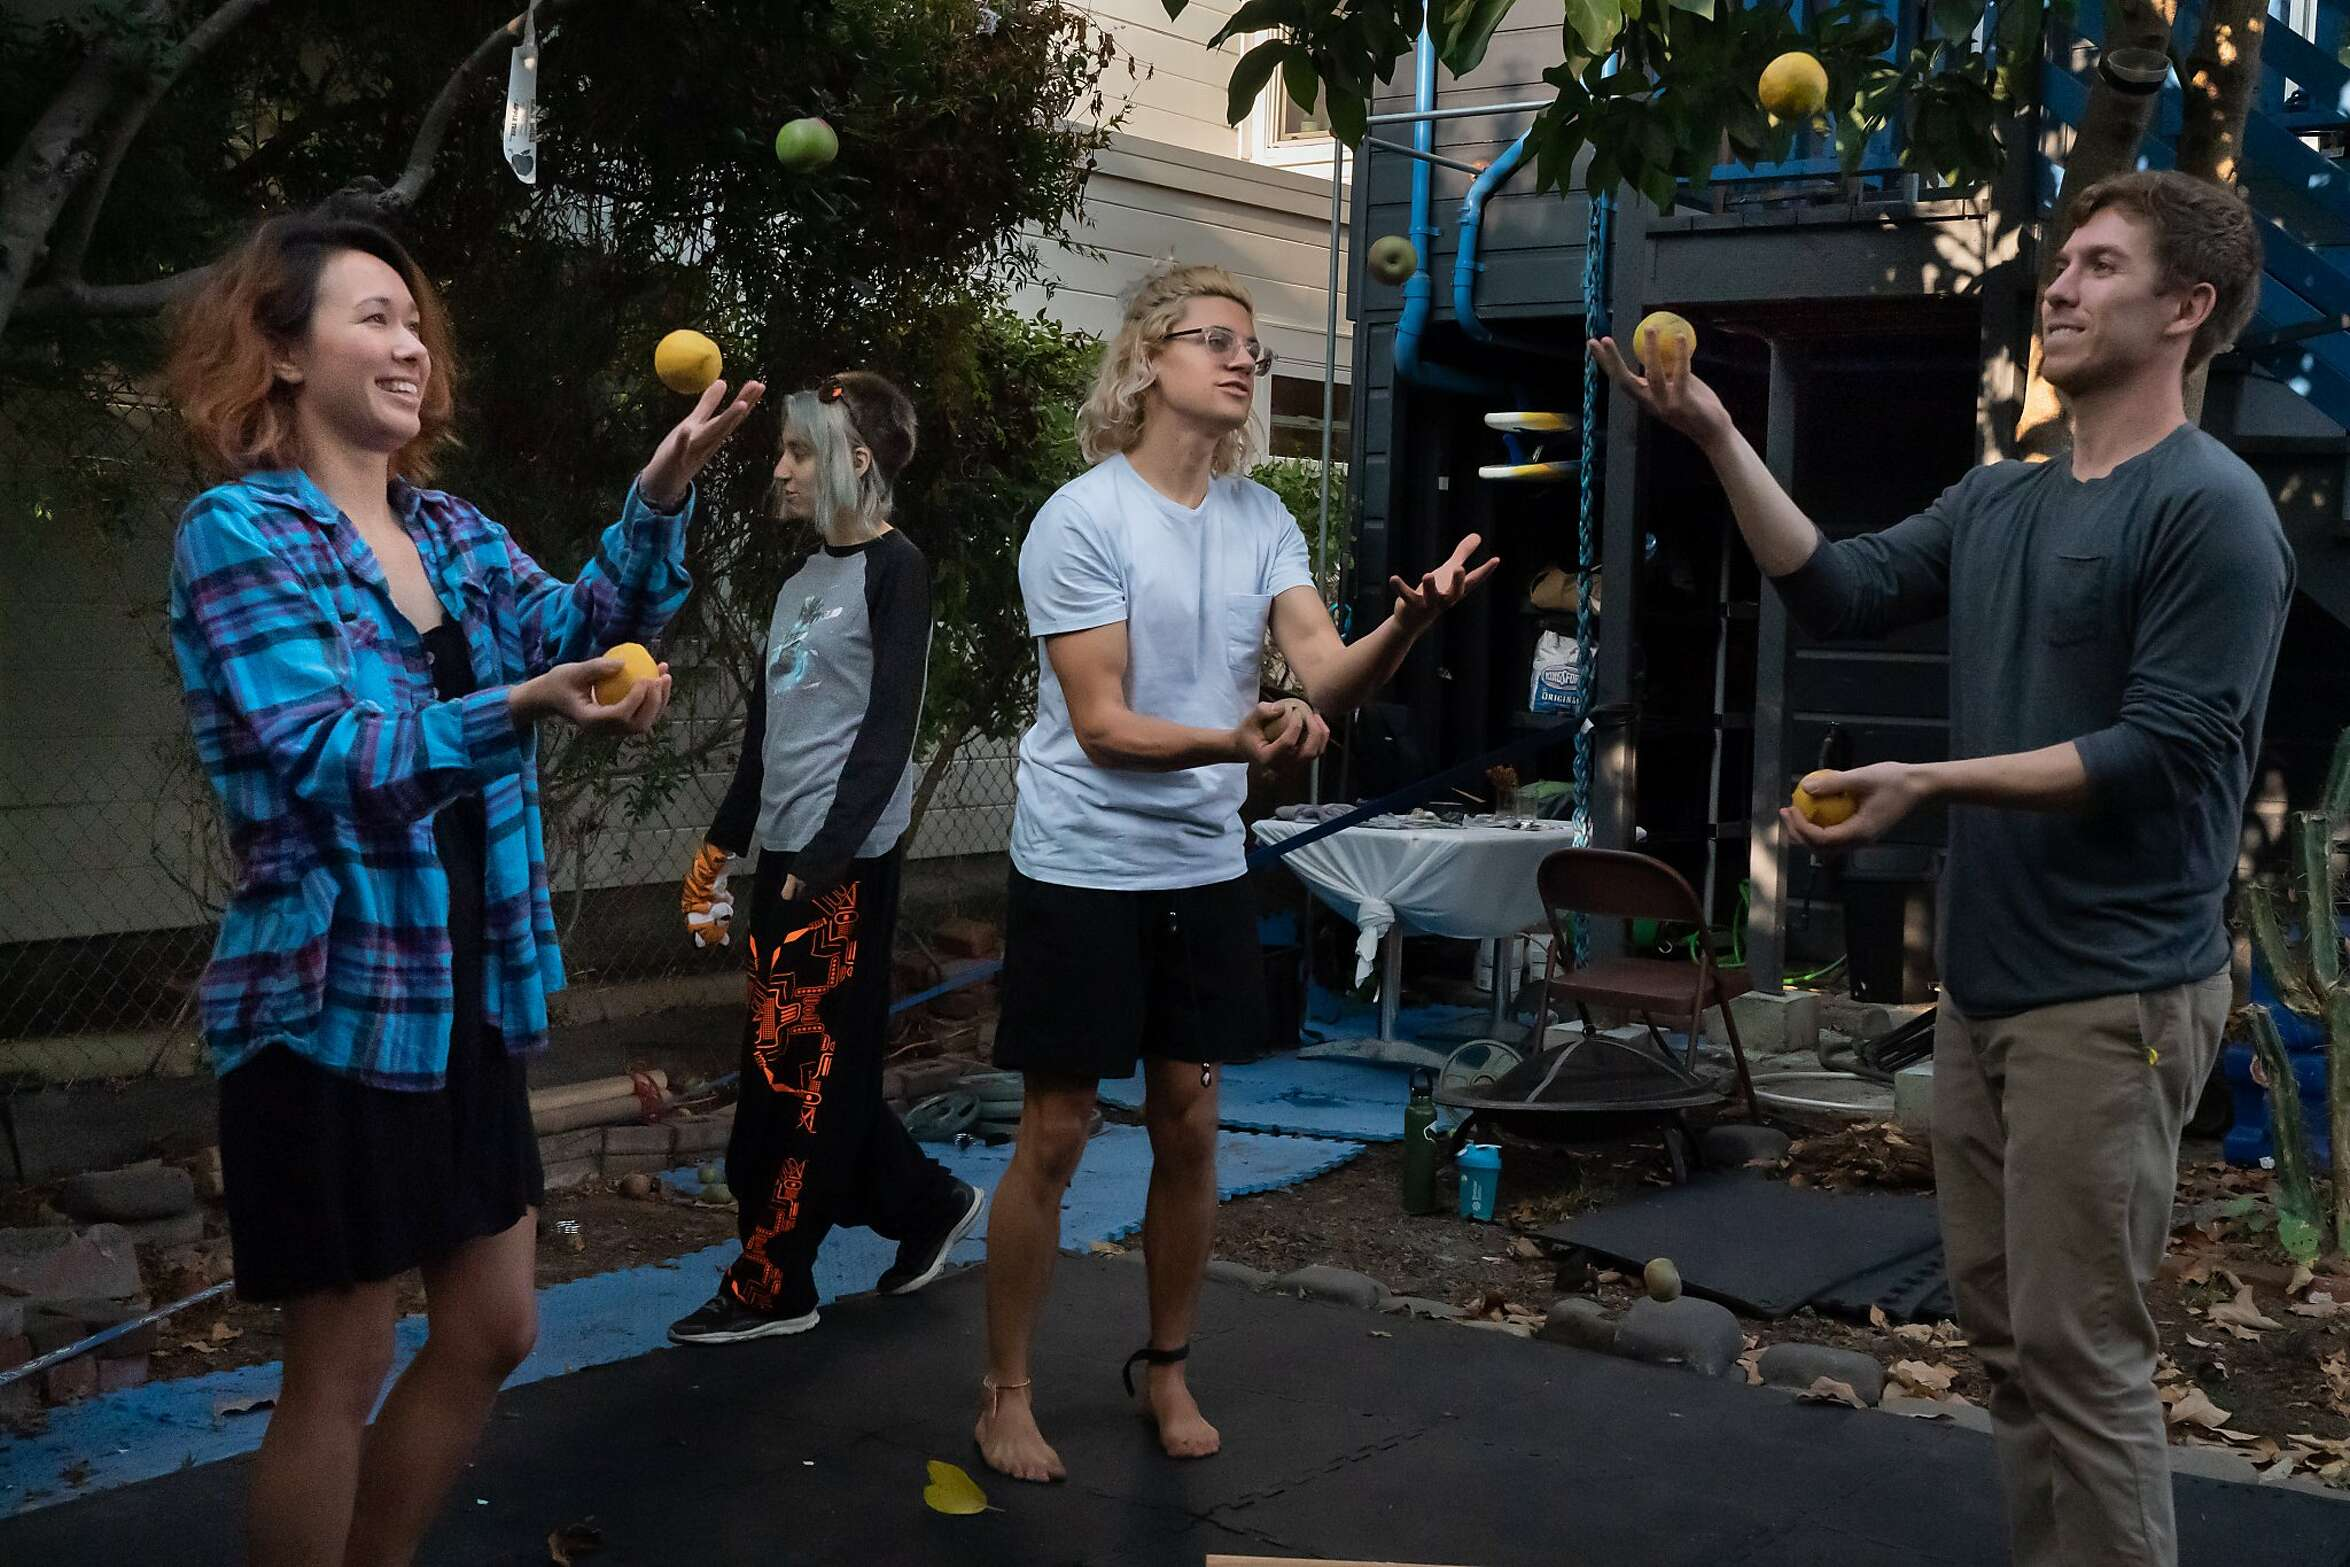 Caitlyn Kenney, Simon Wisdom and Armand Matossian juggle as Ninoa Knangar walks by at the Manor of Being House on Tuesday, Sept. 15, 2020 in San Francisco, Calif. Eleven international people share the home with occupations that includes tech, mathematics, music and art.